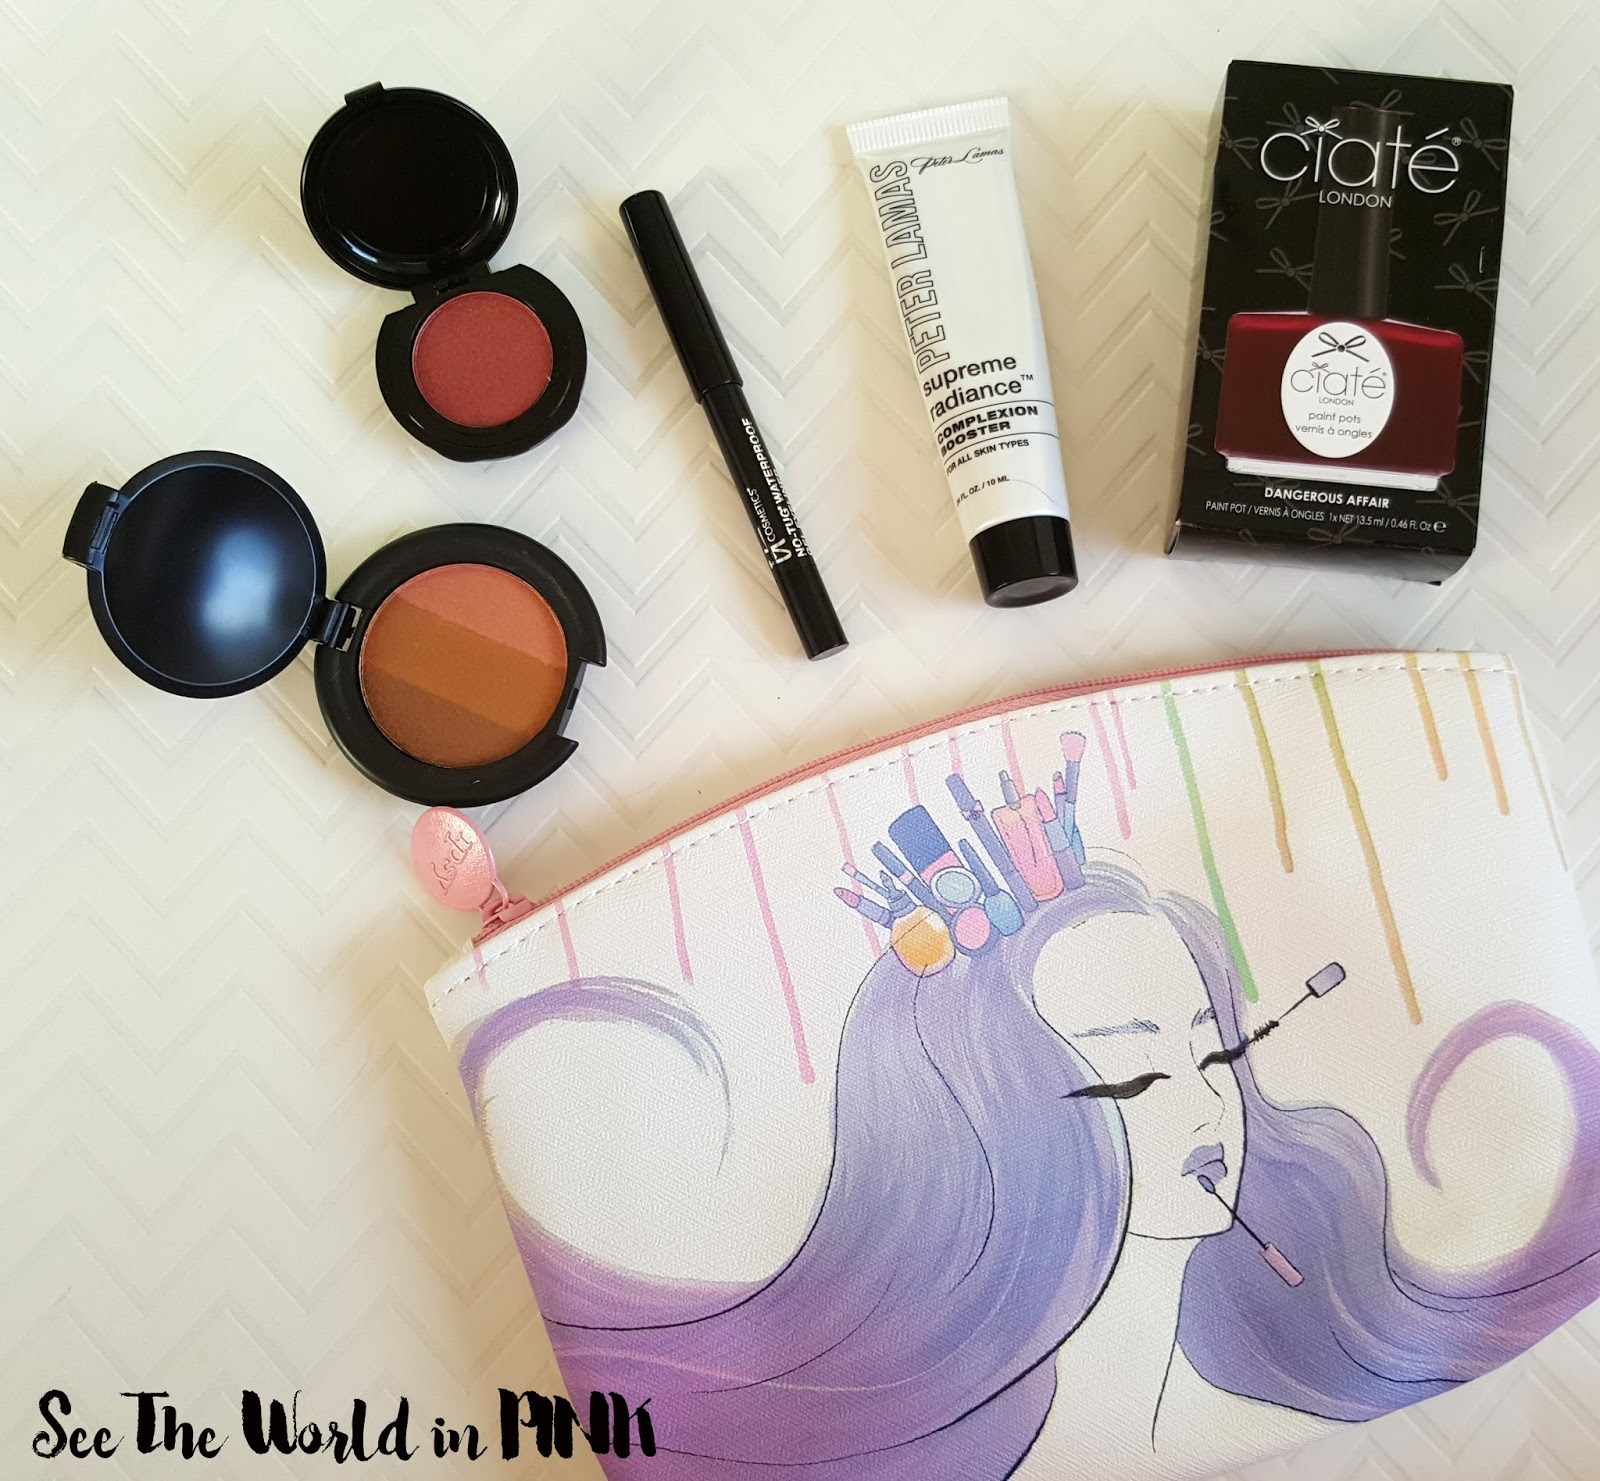 August 2016 - Ipsy Glambag Review and Unboxing